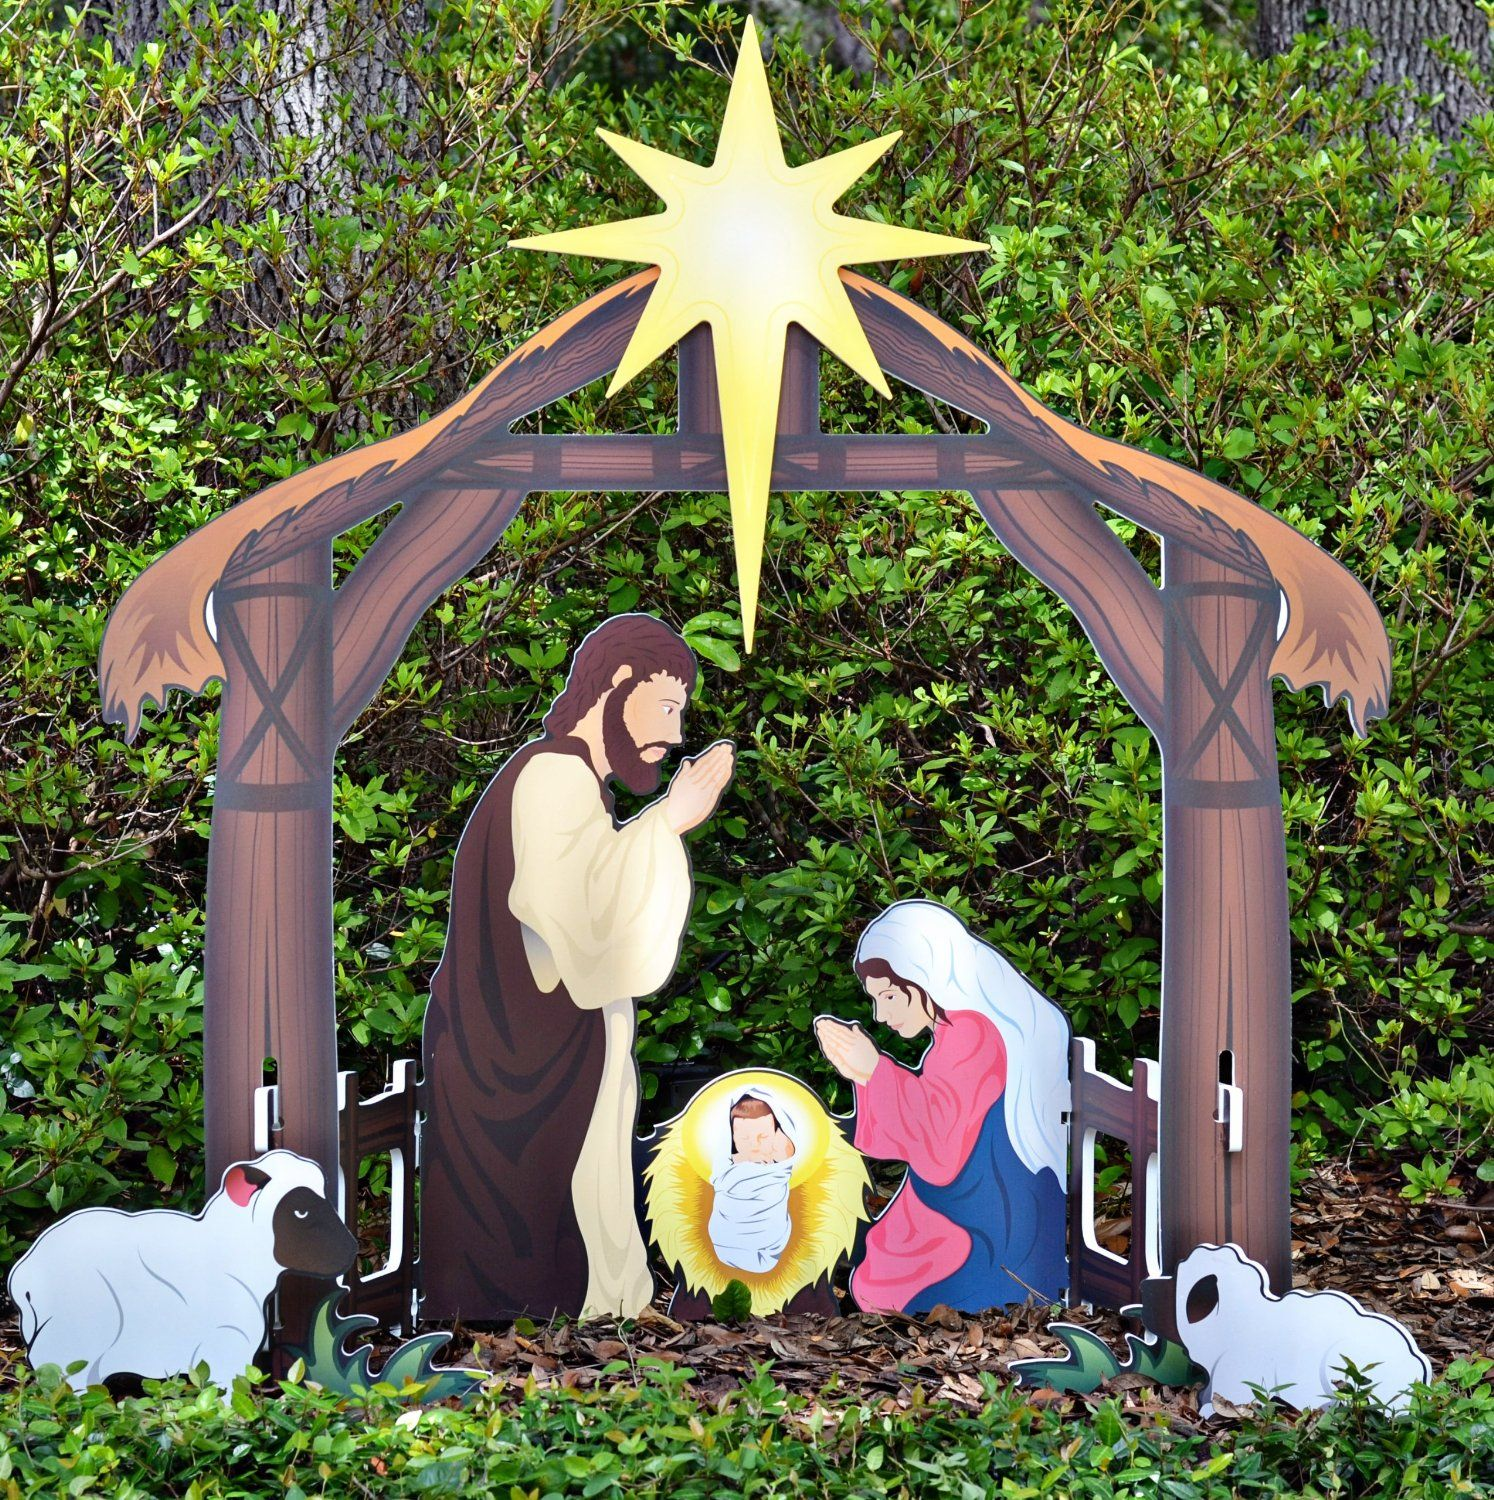 Large Outdoor Nativity Sets For Sale 8 Hand Picked Best Of The Best Christm Outdoor Nativity Scene Yard Nativity Scene Christmas Yard Decorations